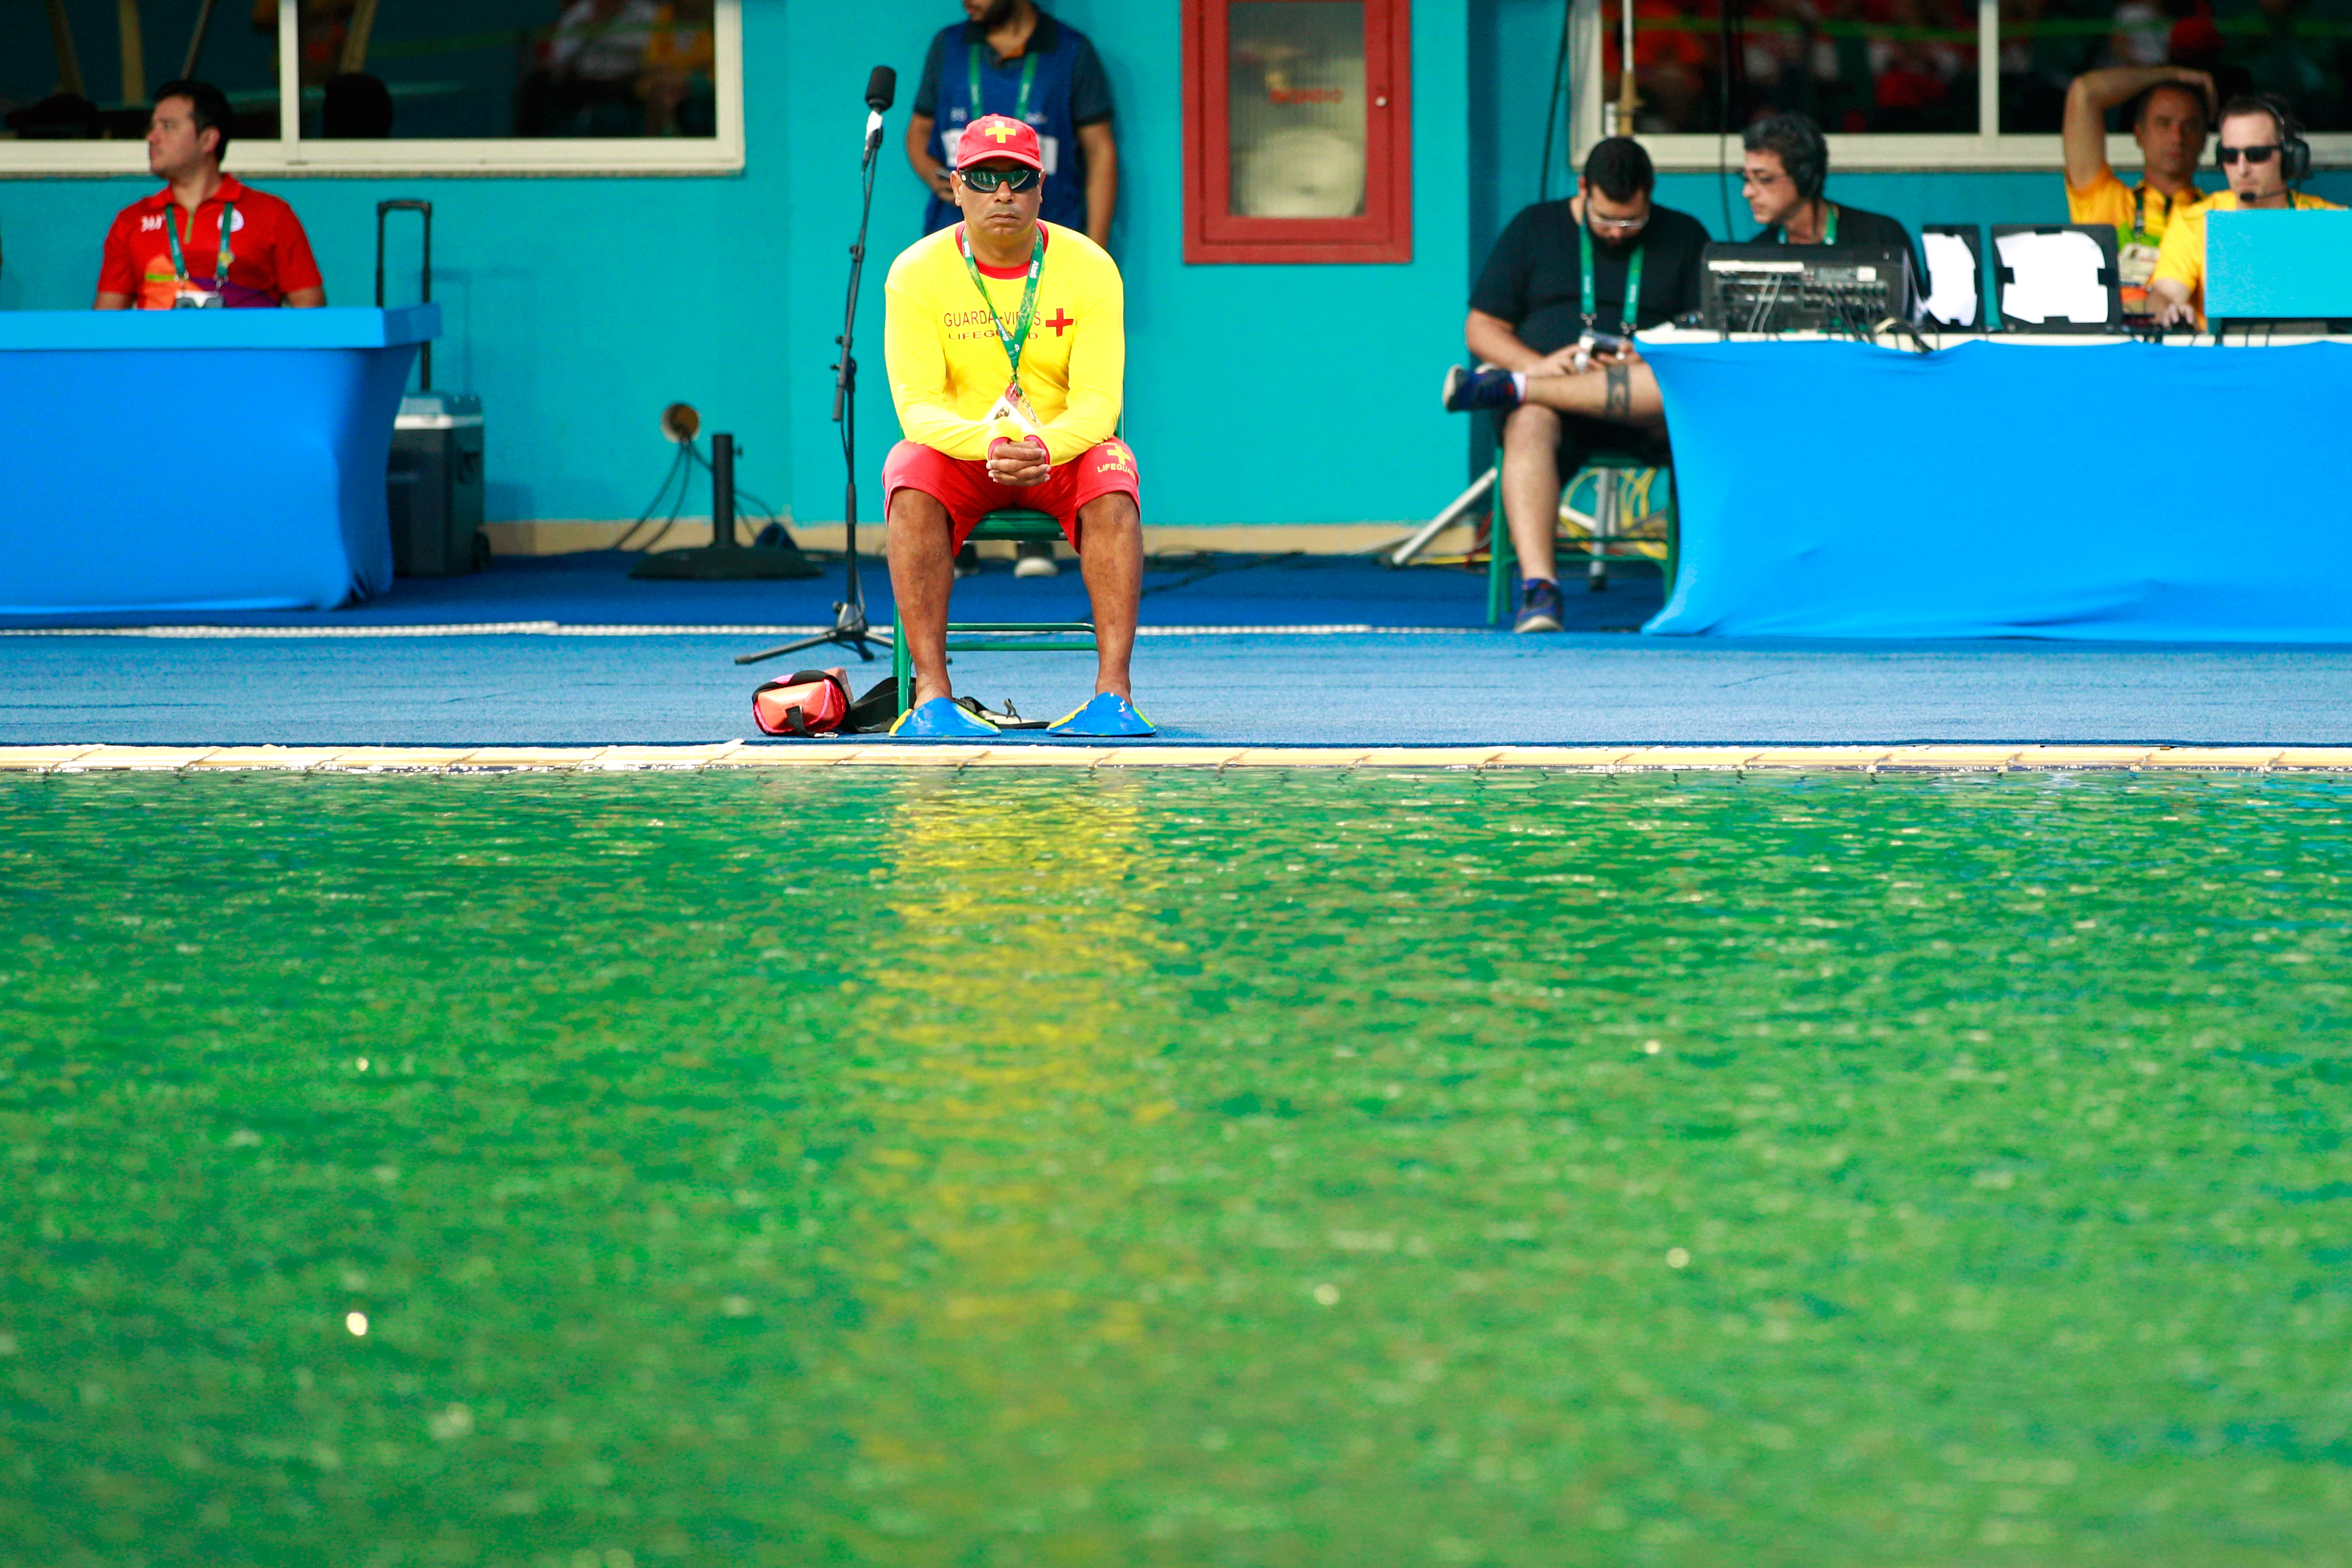 Rio 39 s olympic diving pool turned green overnight thanks to algae for Why does a swimming pool turn green